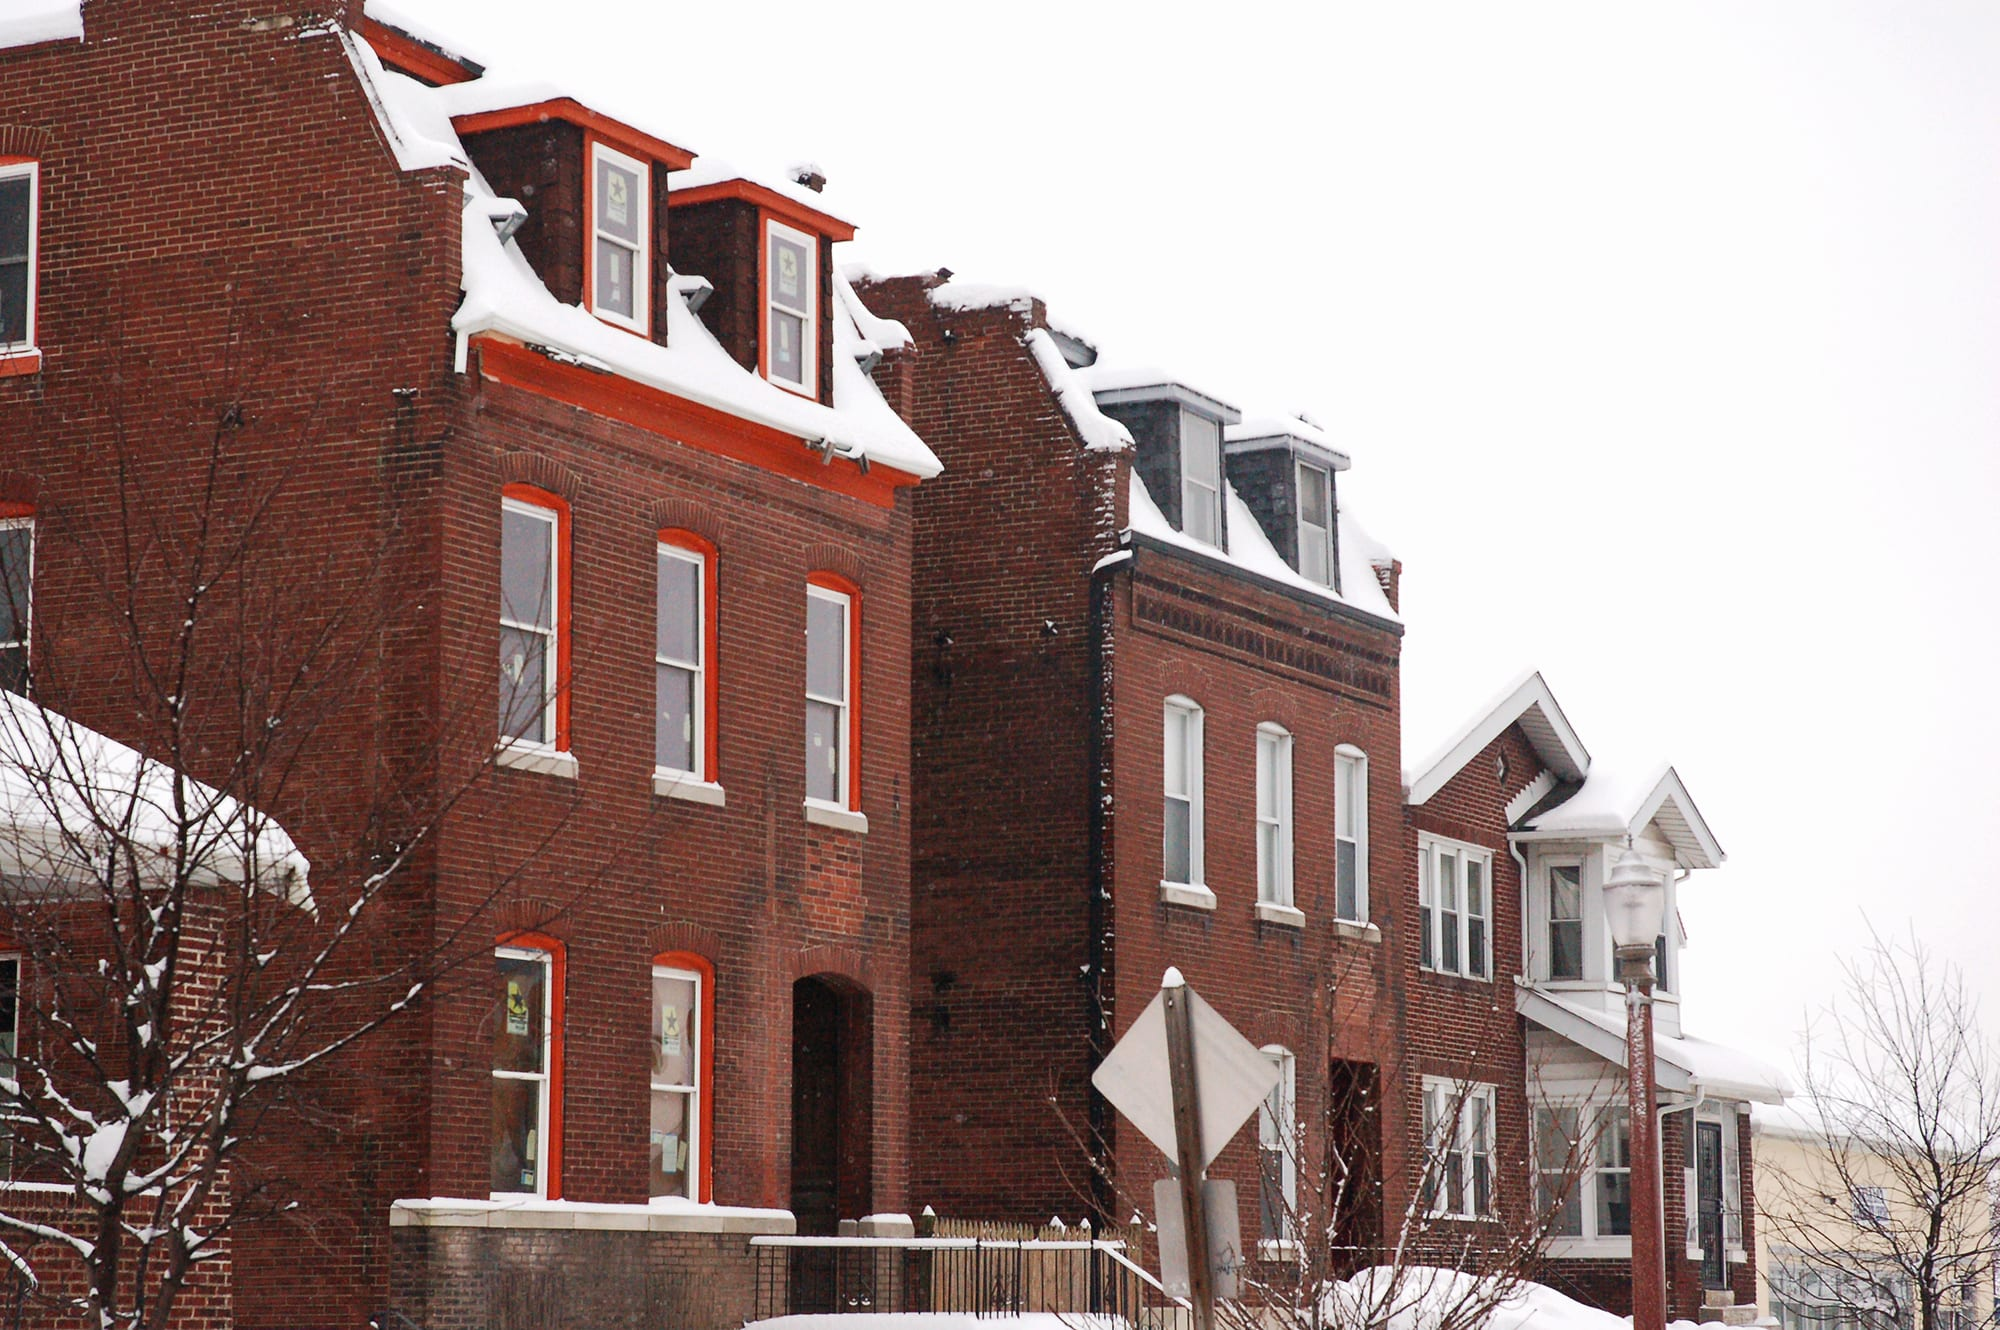 Houses on Meramec Street in the snow.